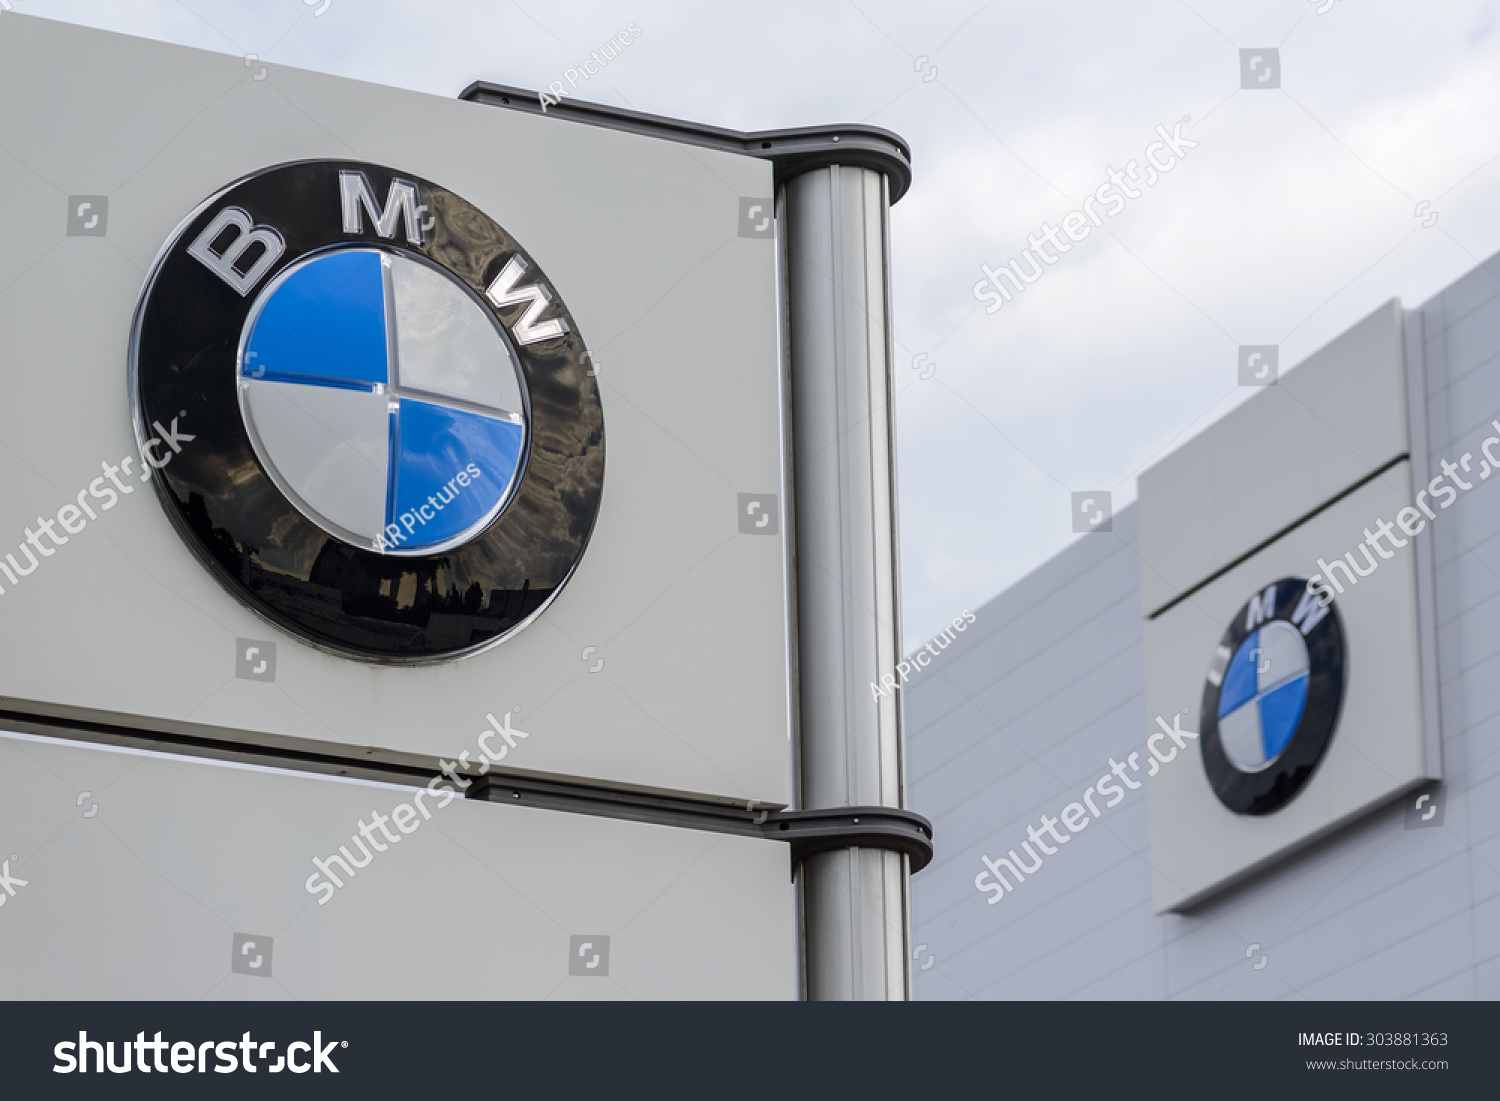 Berlin Germany July 23 The Logo Of The Brand Quot Bmw Quot At A New Car Dealer Building On Jul 23